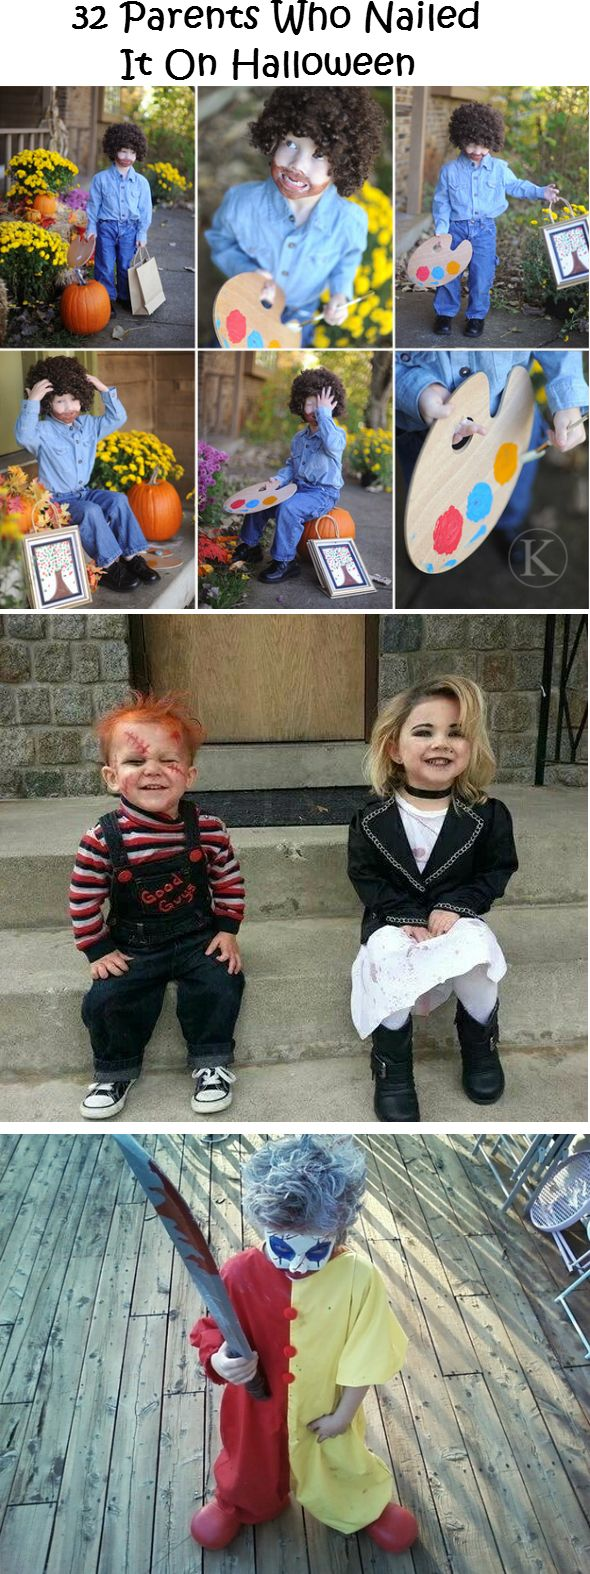 209 best costumes ideas images on pinterest carnivals for kids 32 parents who nailed it on halloween httphomerepairimprovementremodeling chucky costume for kidshalloween solutioingenieria Images